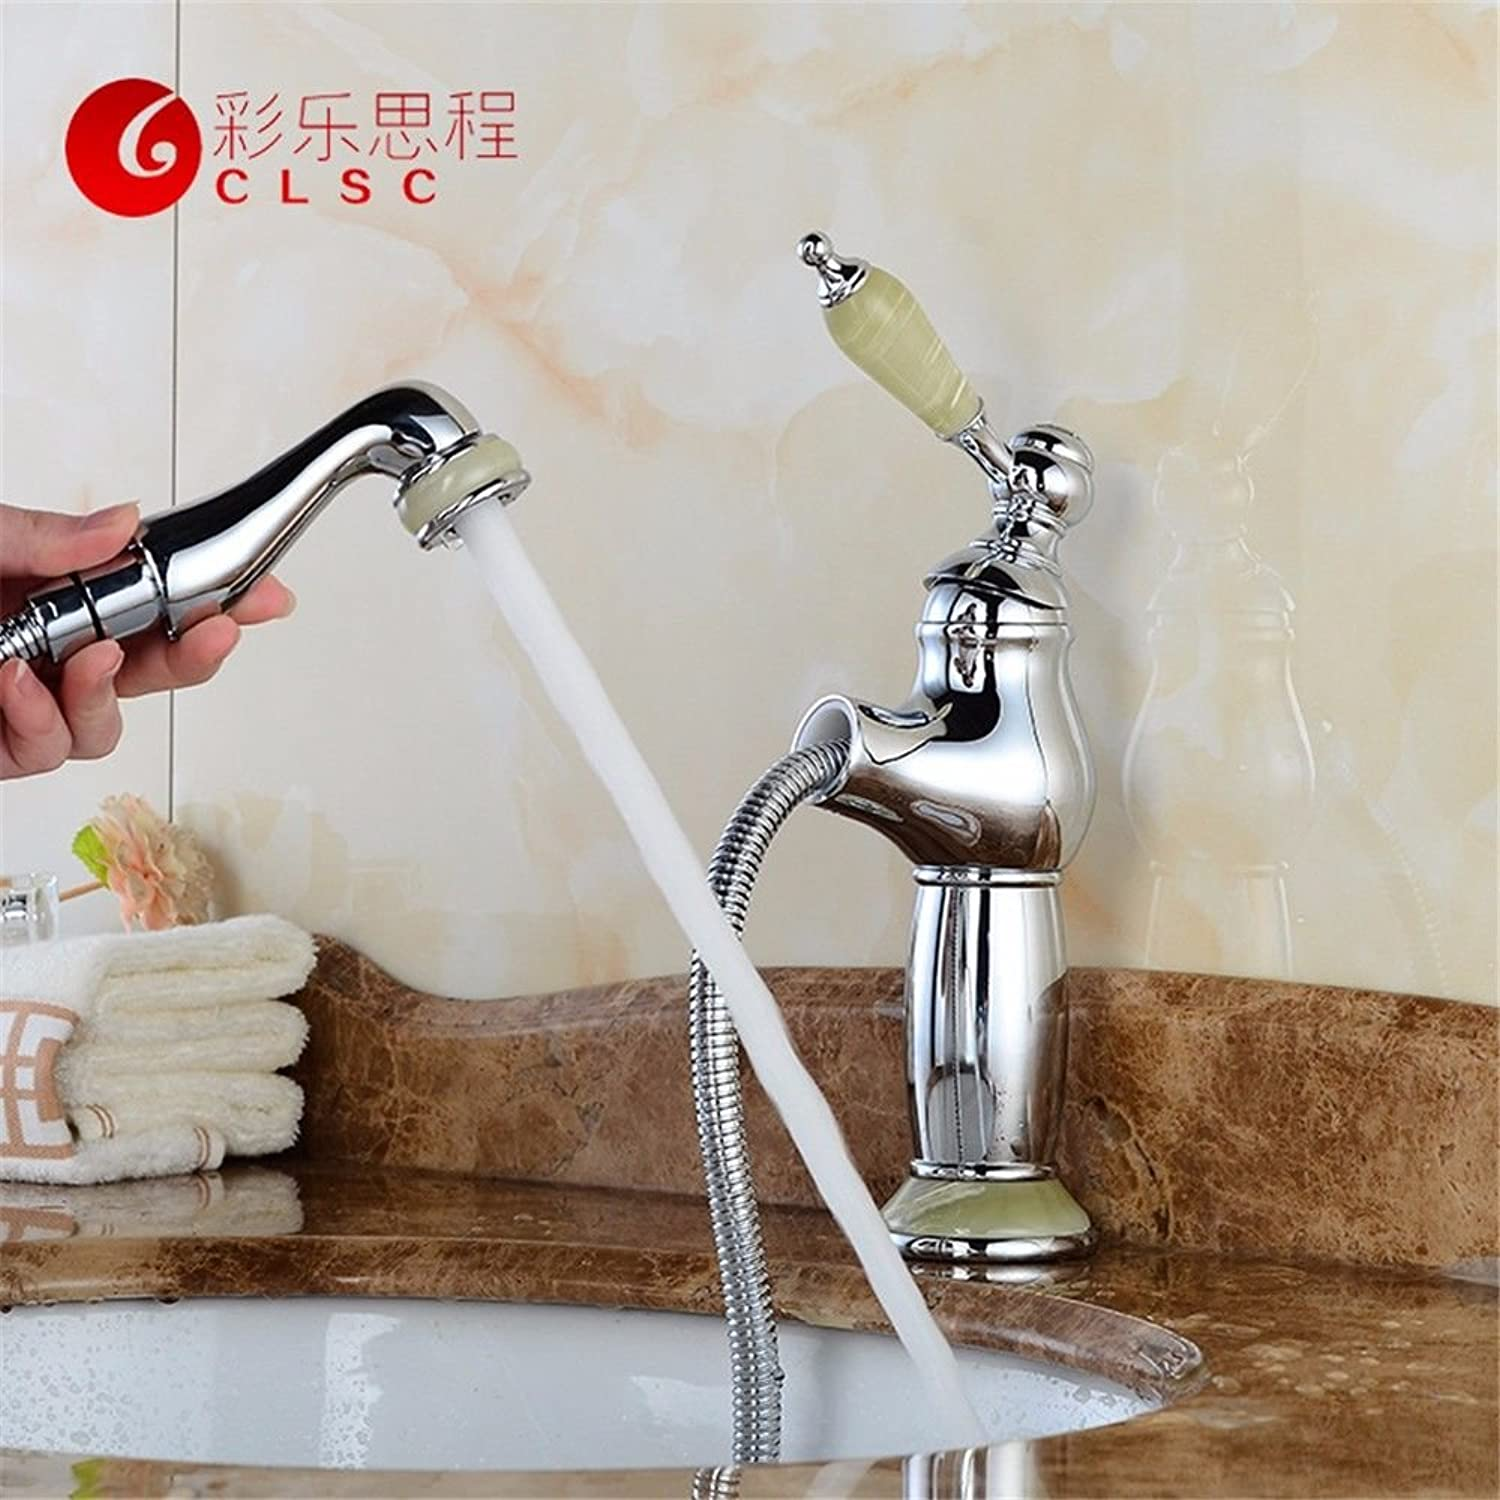 Commercial Single Lever Pull Down Kitchen Sink Faucet Brass Copper Chrome Marble Antique European Pull Bathroom Hot and Cold Faucet Bathroom Single Hole Above Counter Basin Kitchen Bathroom Vanity